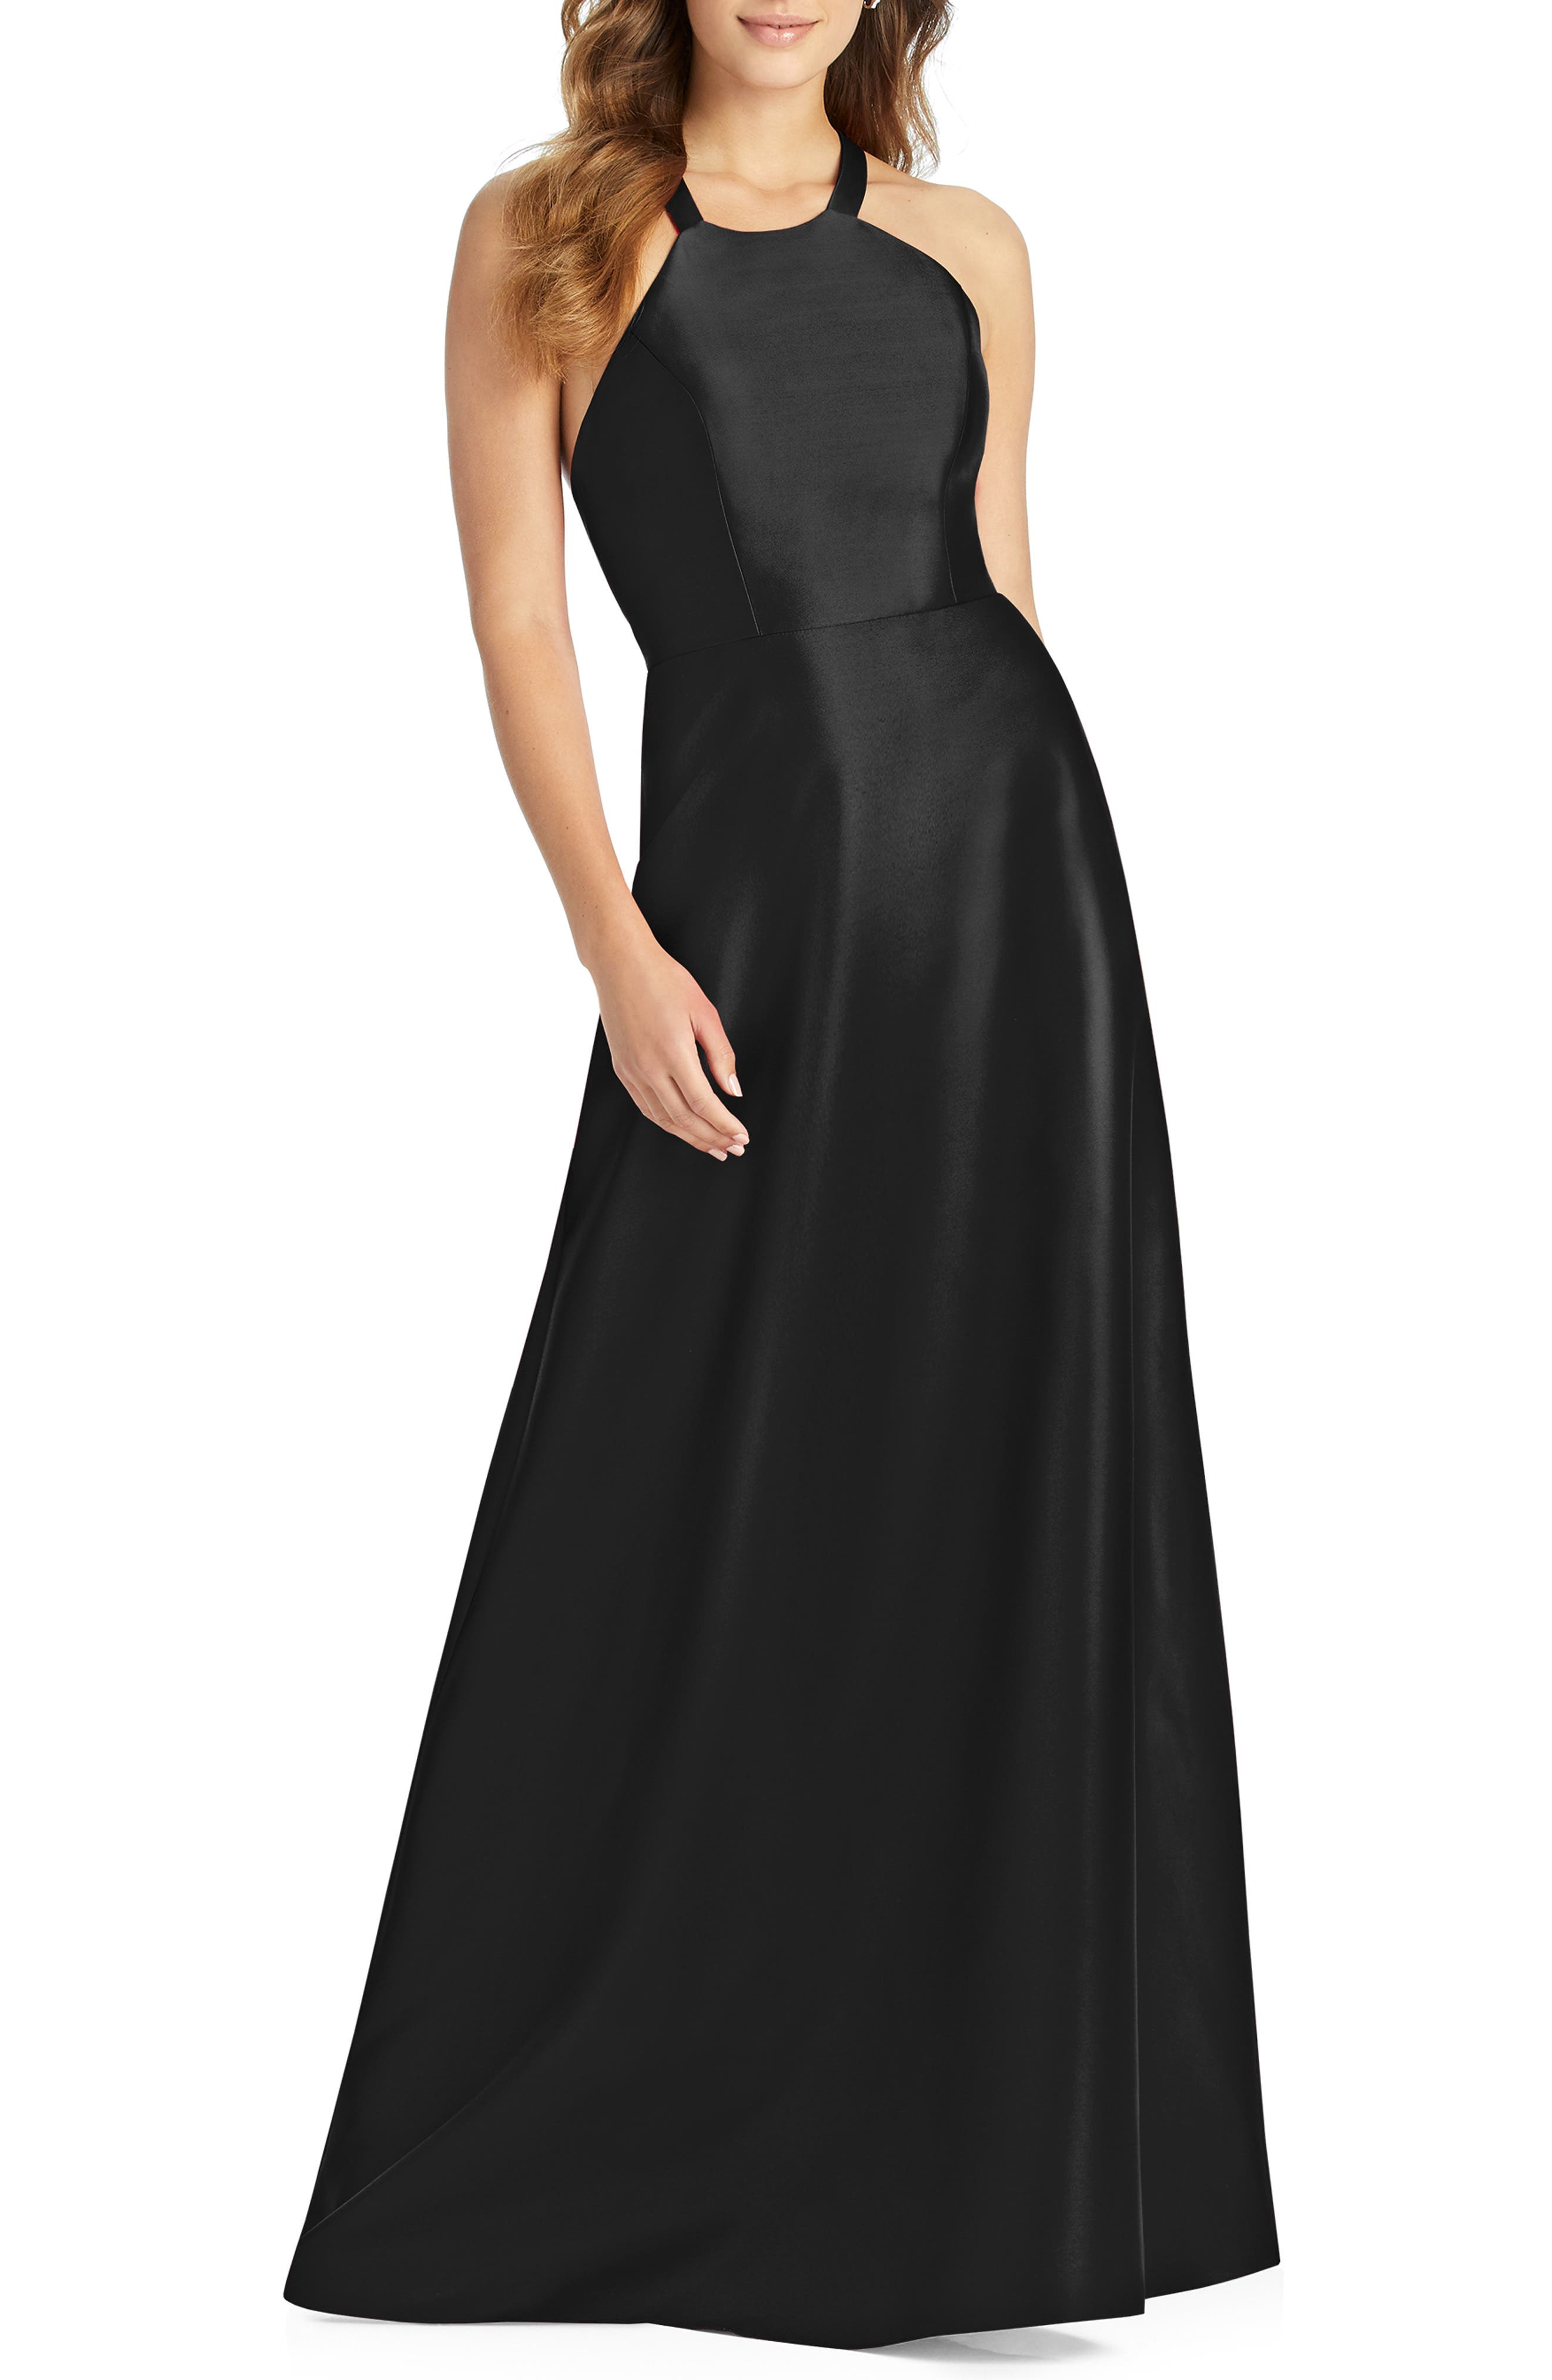 Lace-Up Back Satin Twill A-Line Gown